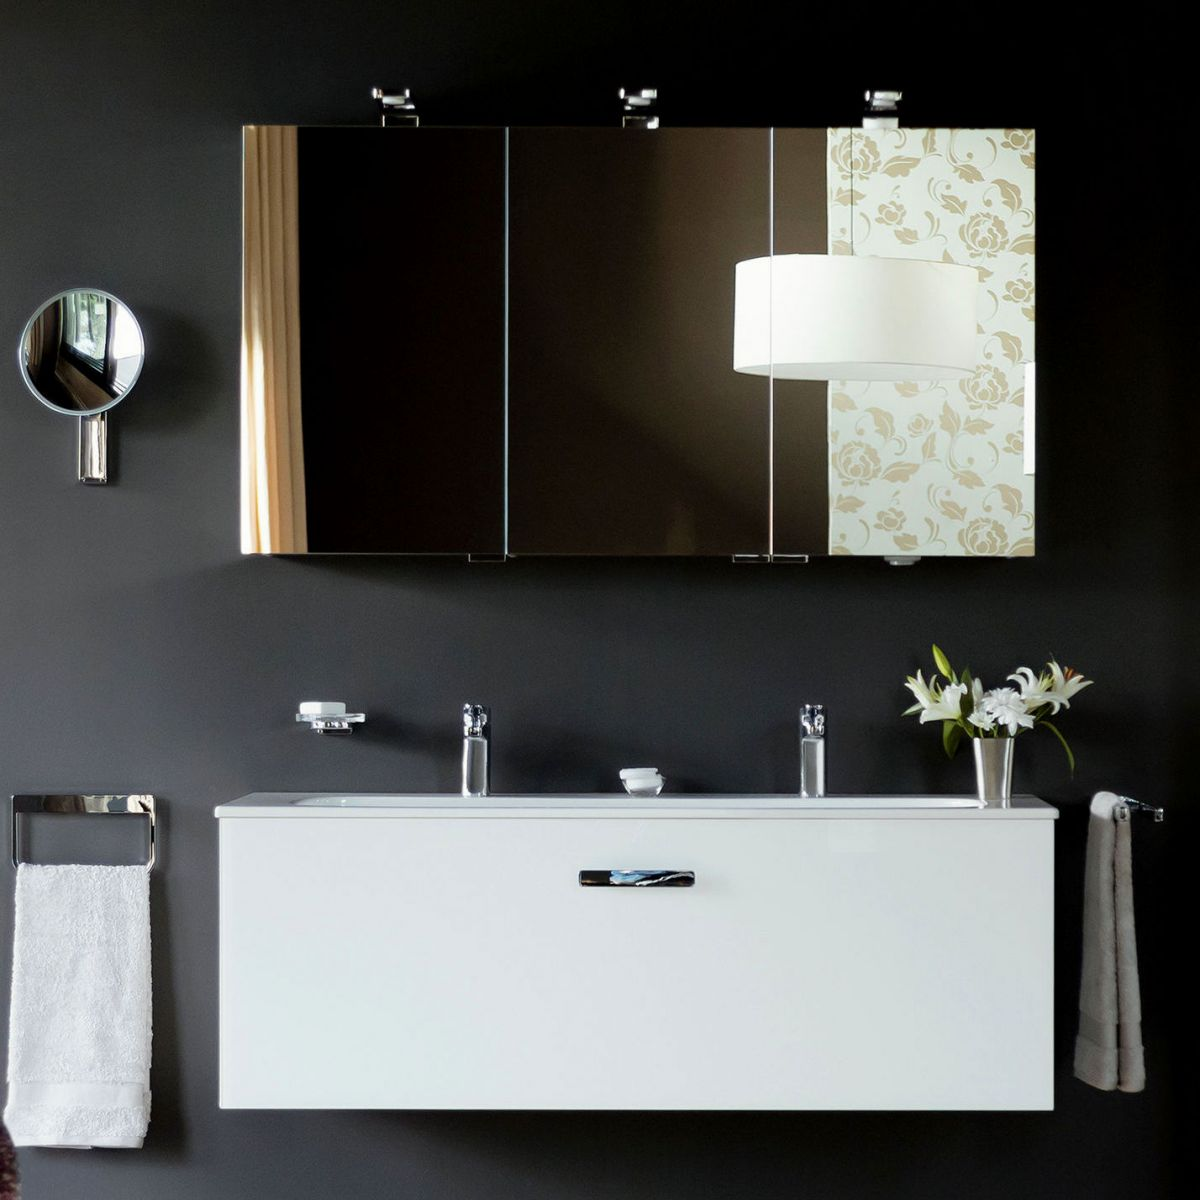 mirrored bathroom cabinets keuco royal universe illuminated mirror cabinet uk bathrooms 23387